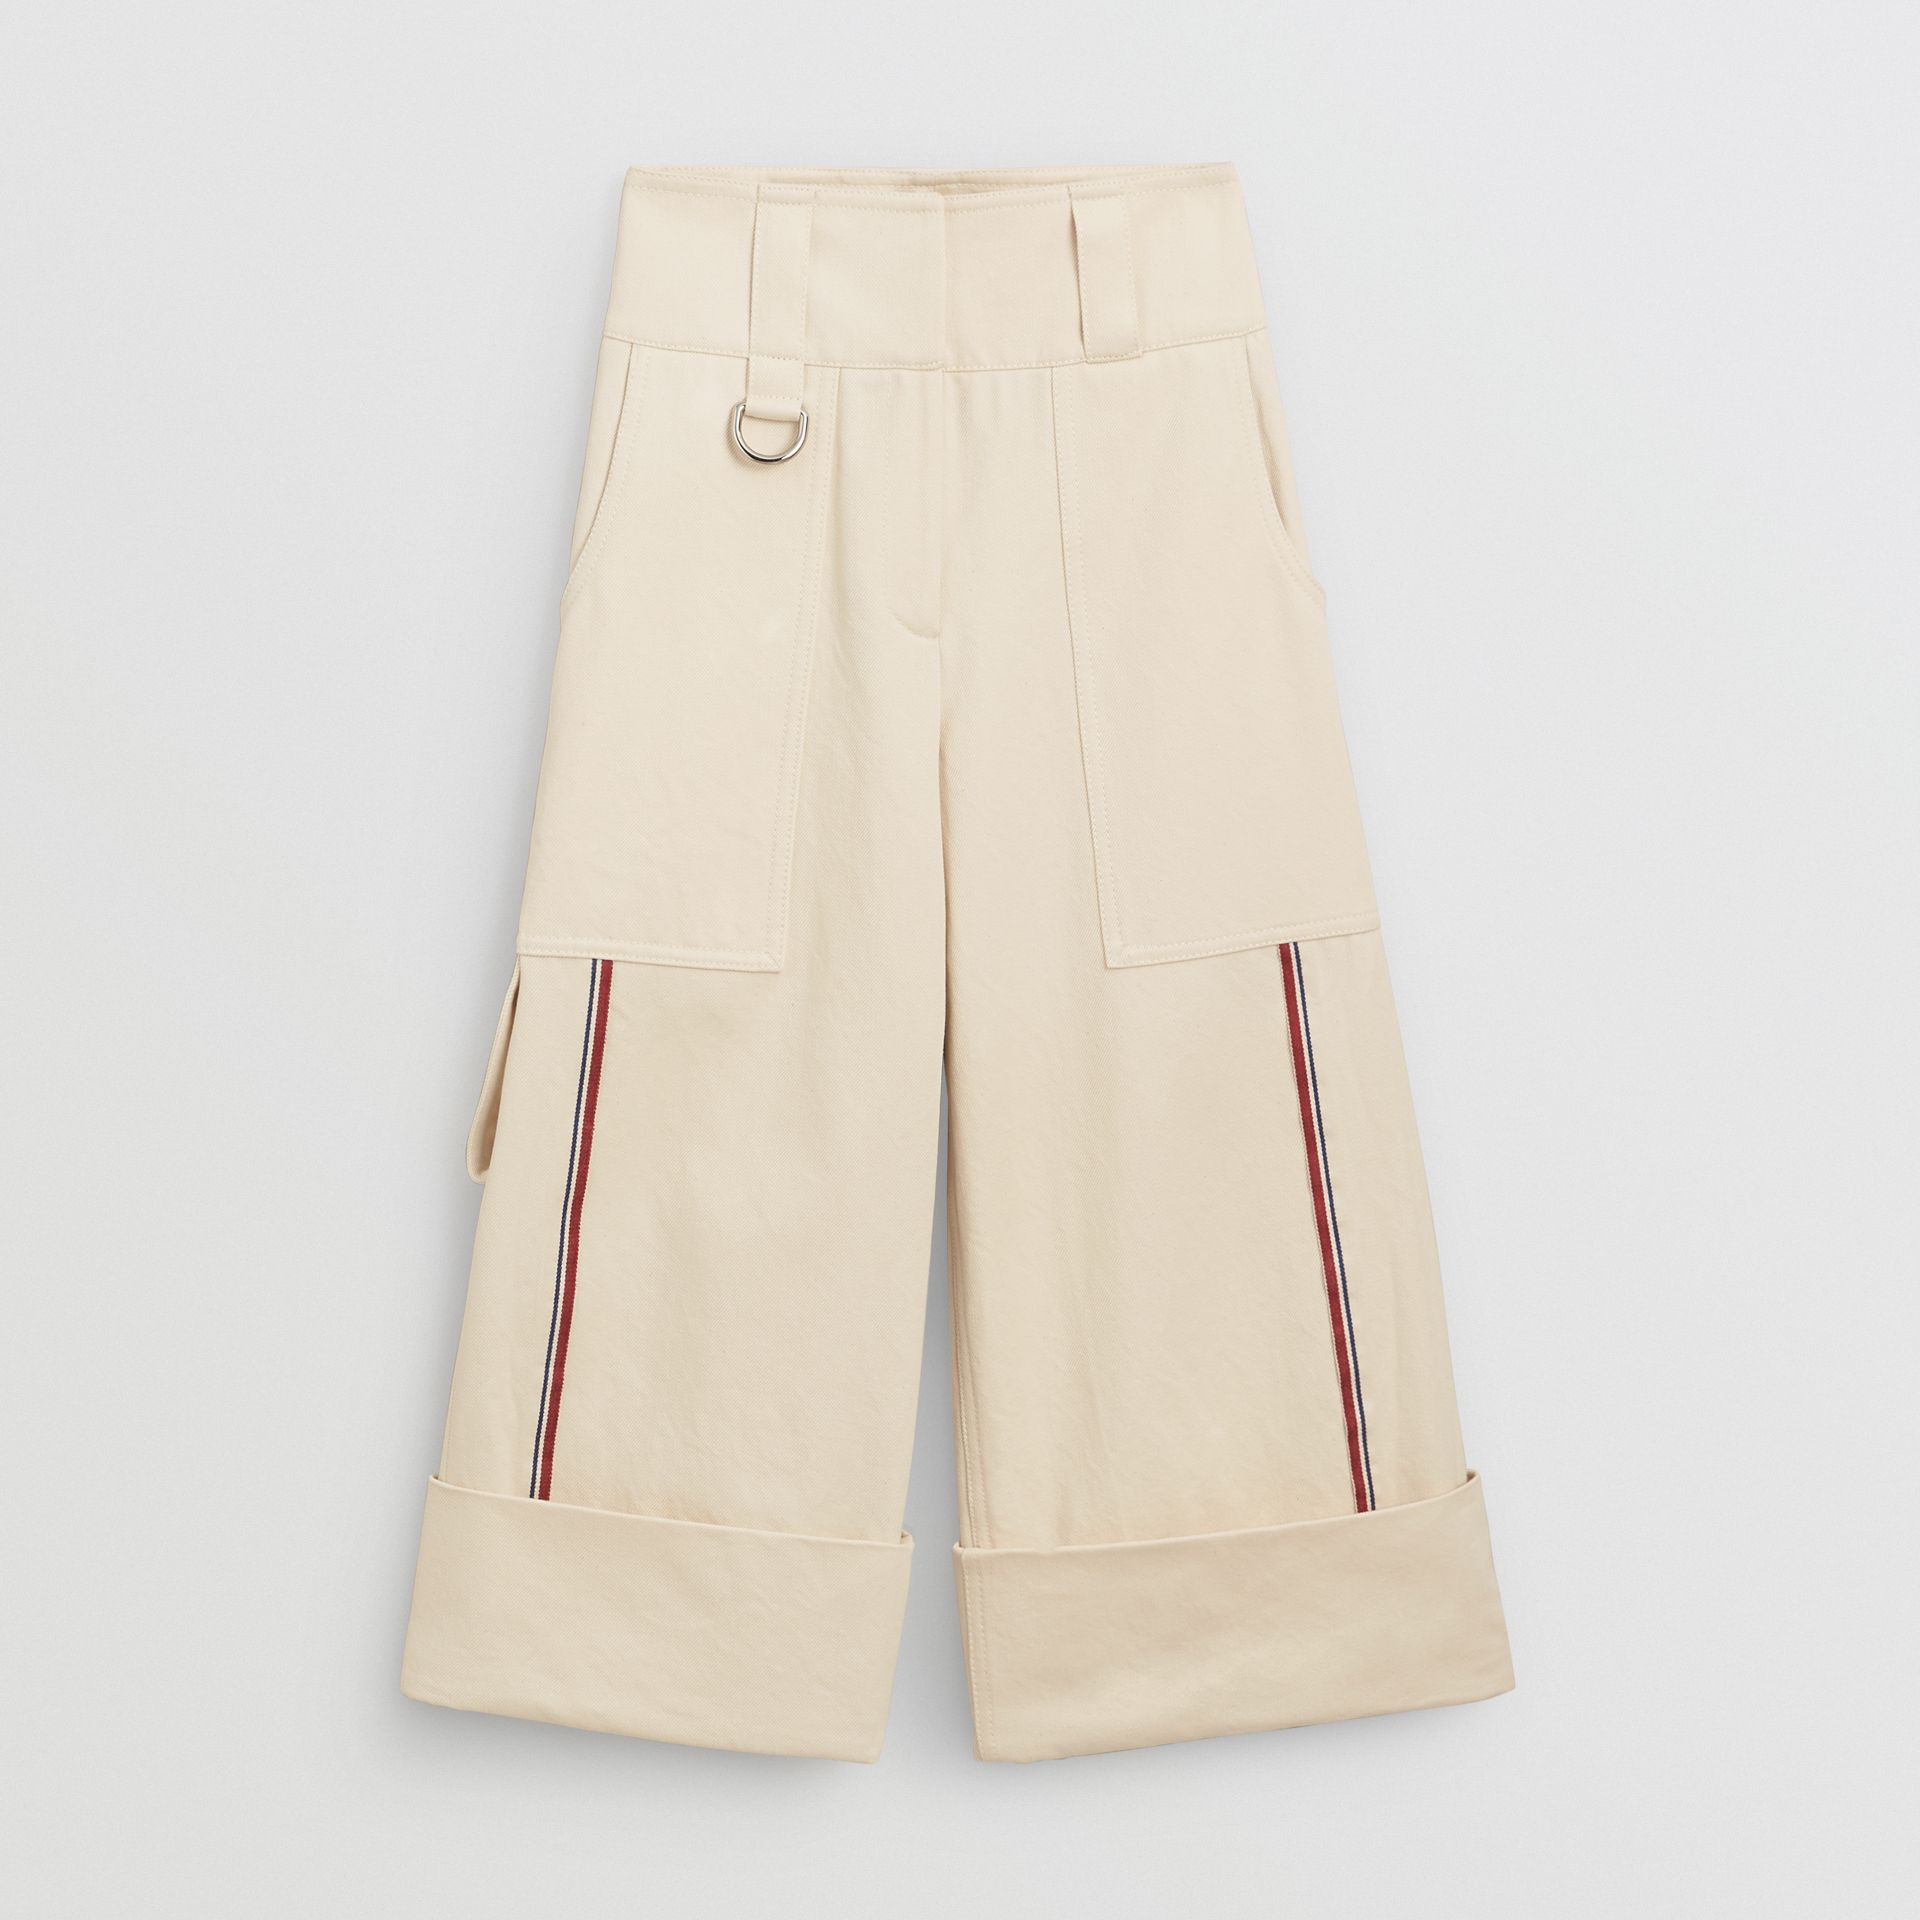 Pantalon ample 7/8 en coton à rayures (Blanc Naturel) - Femme | Burberry Canada - photo de la galerie 3